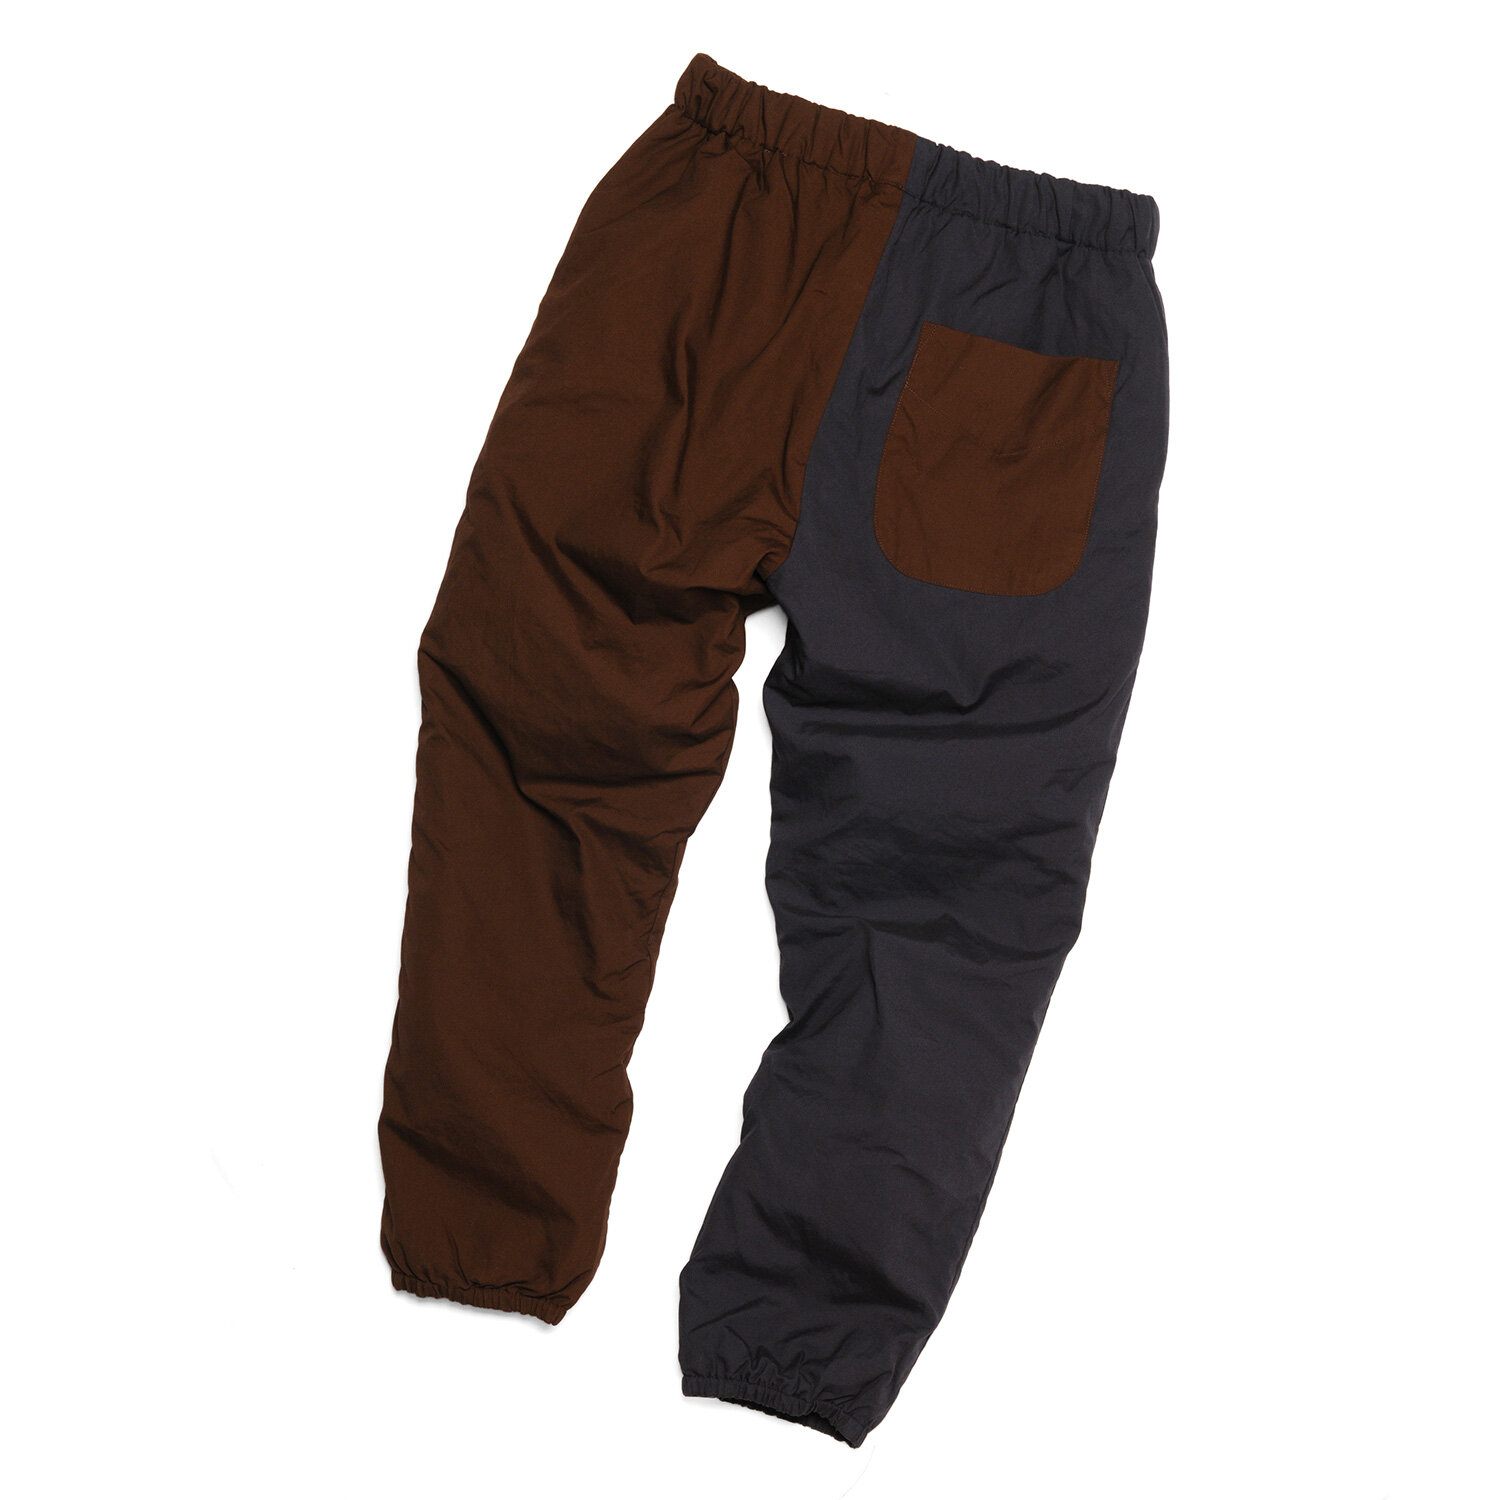 2-Insulated-Pants,-Navy-Brown,-Back.jpg